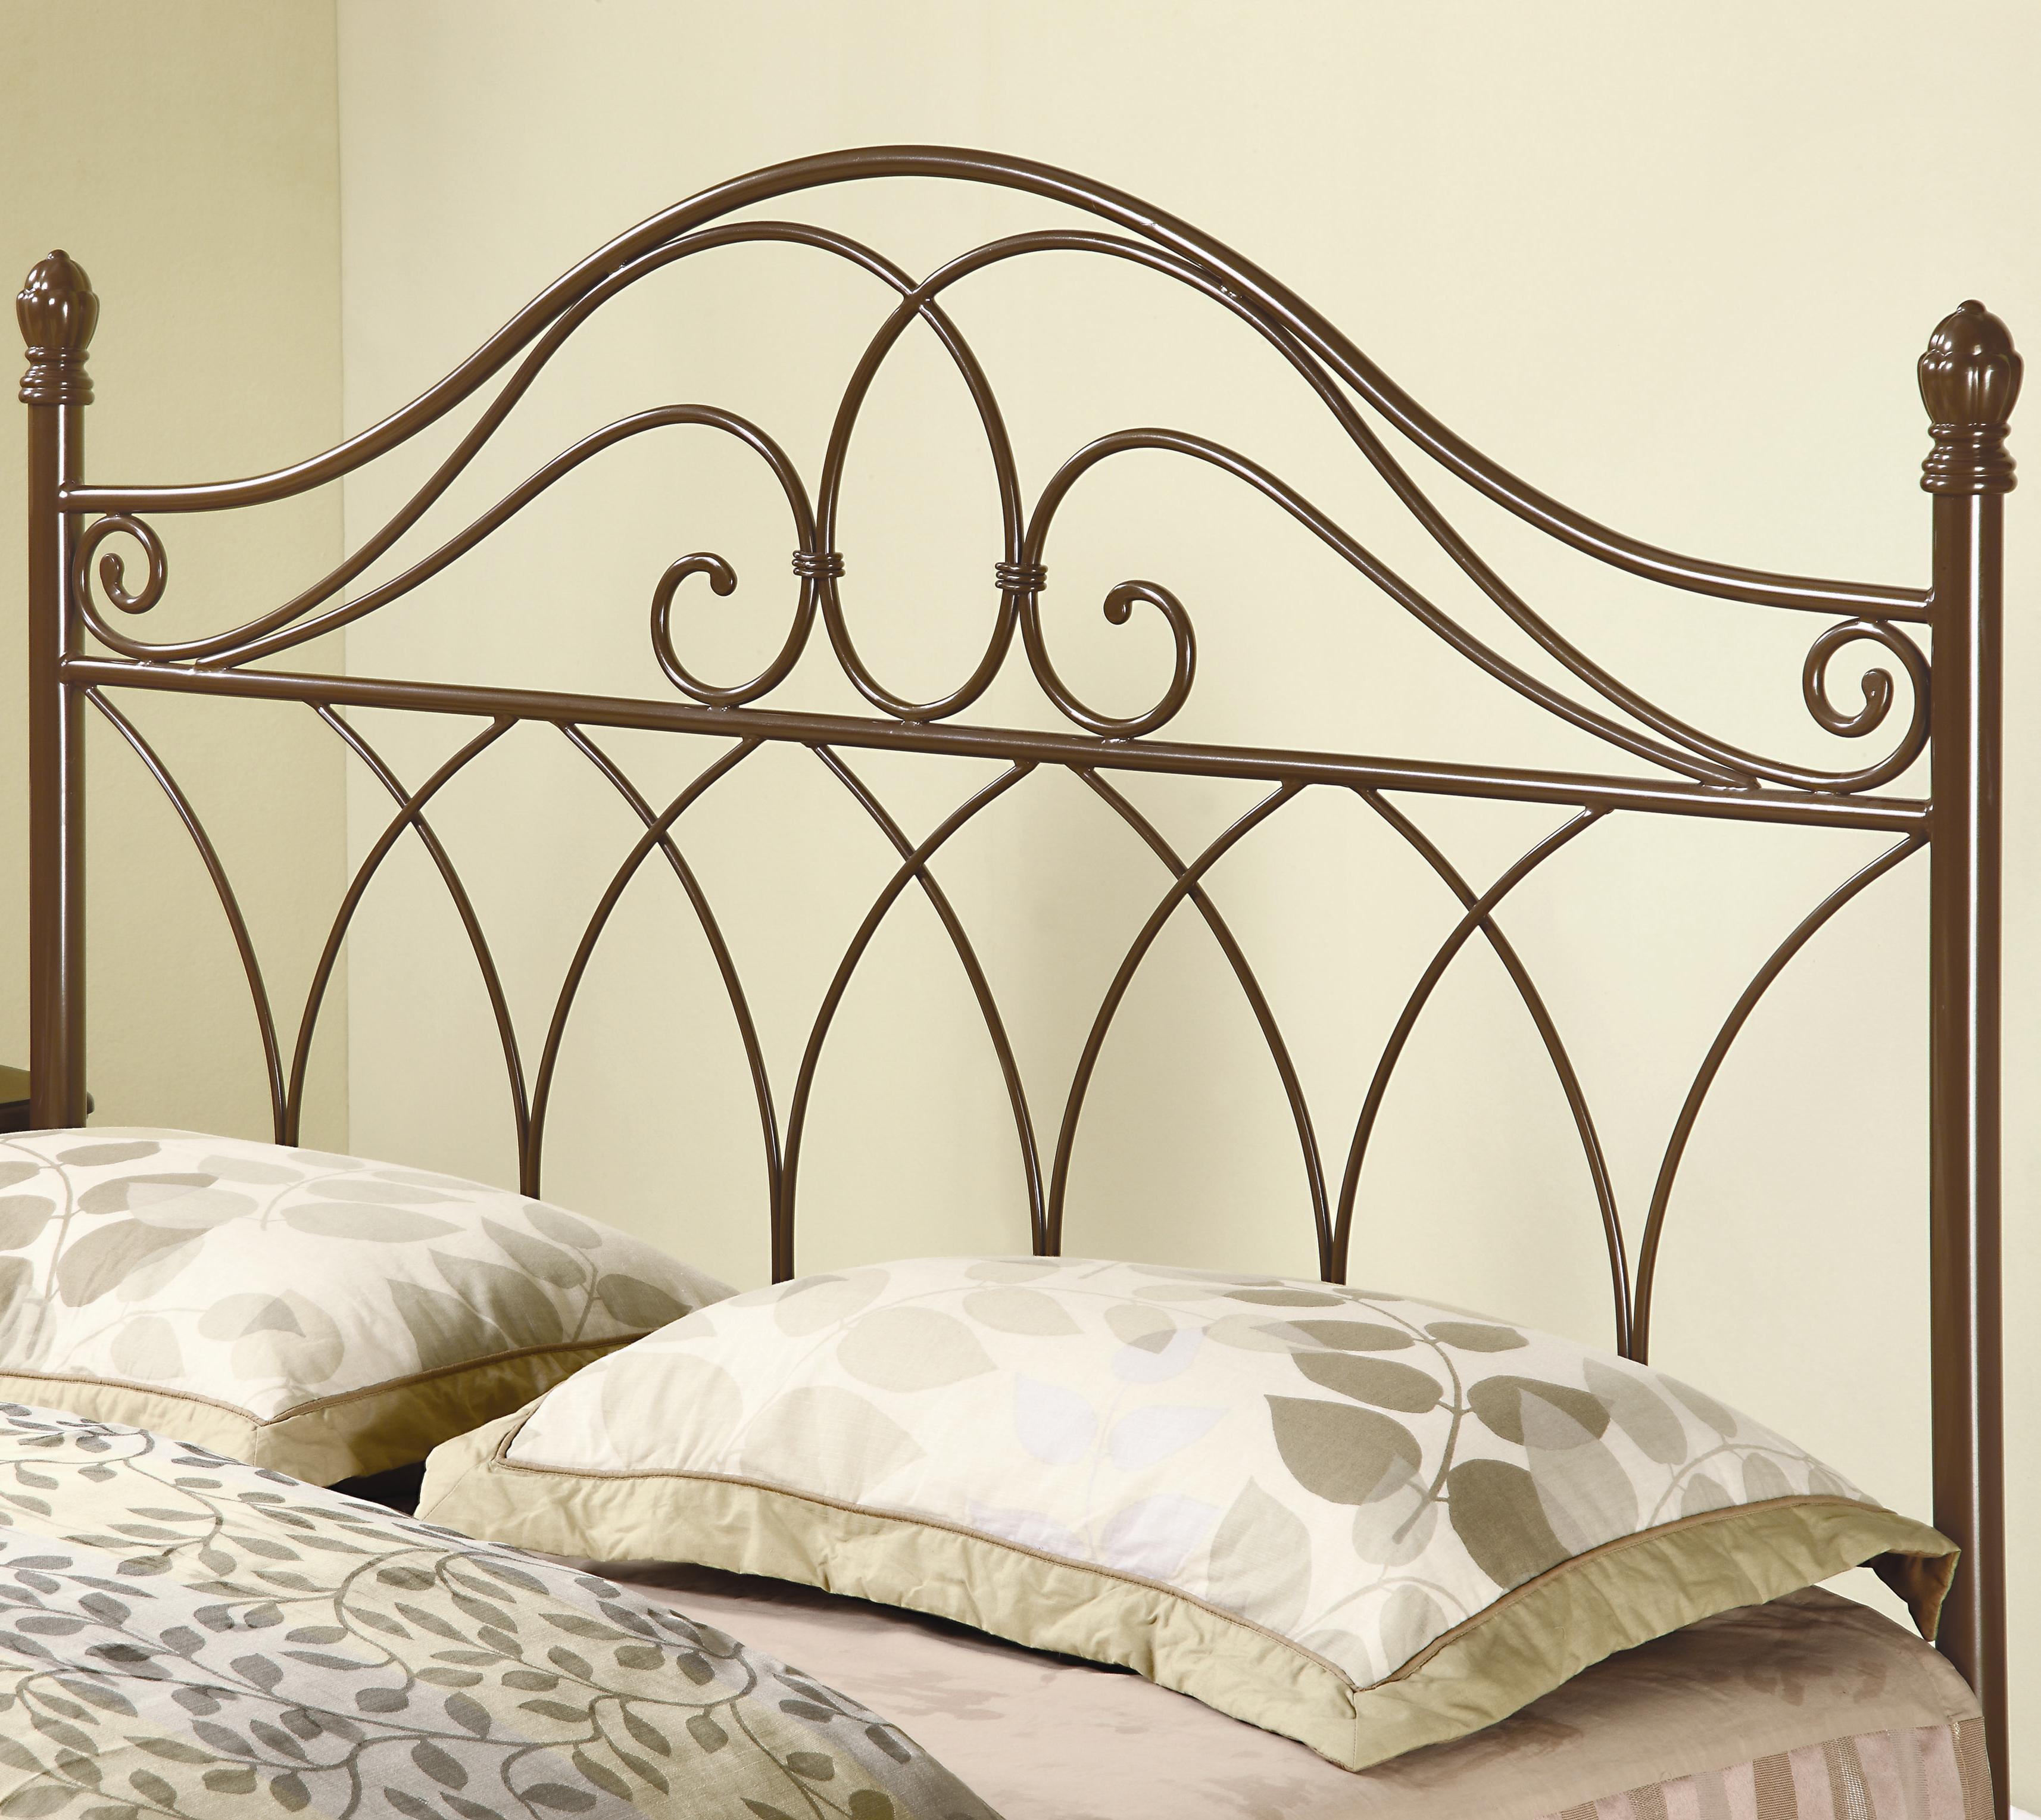 Coaster Iron Beds And Headboards Full Queen Brown Metal Headboard